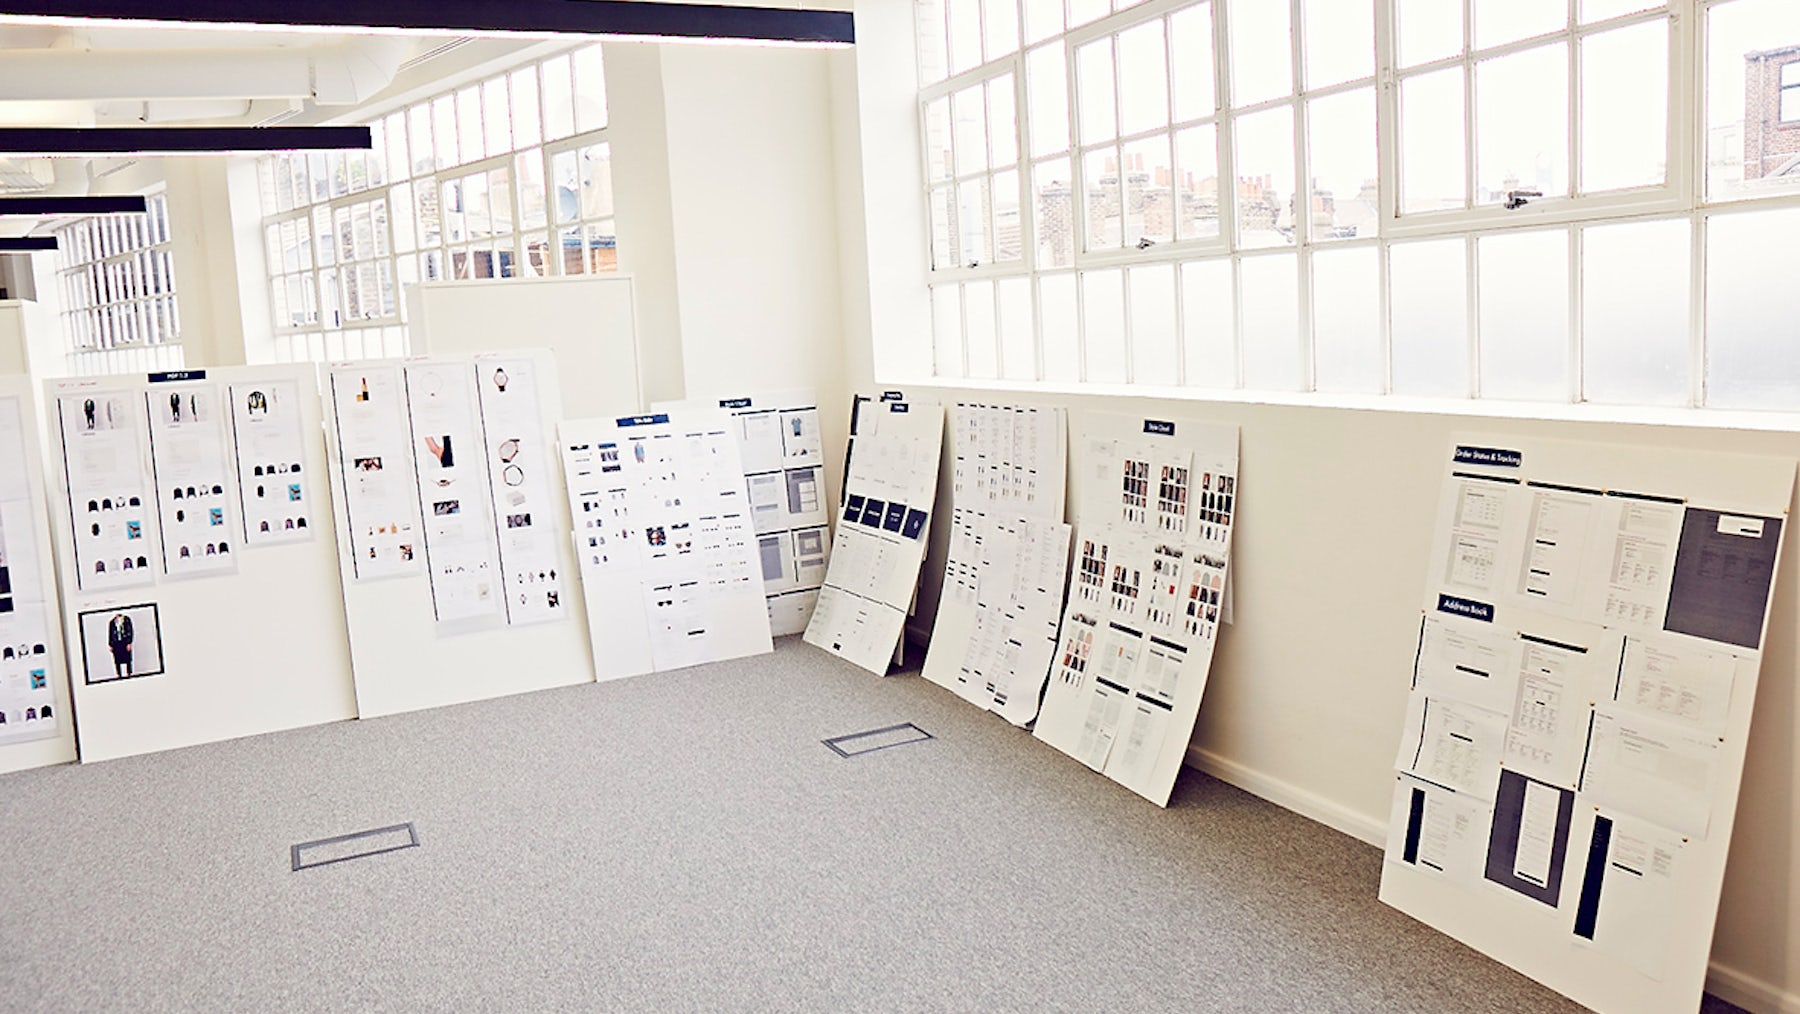 Inside Style.com's open-plan offices in the Camden neighbourhood of London | Source: Courtesy